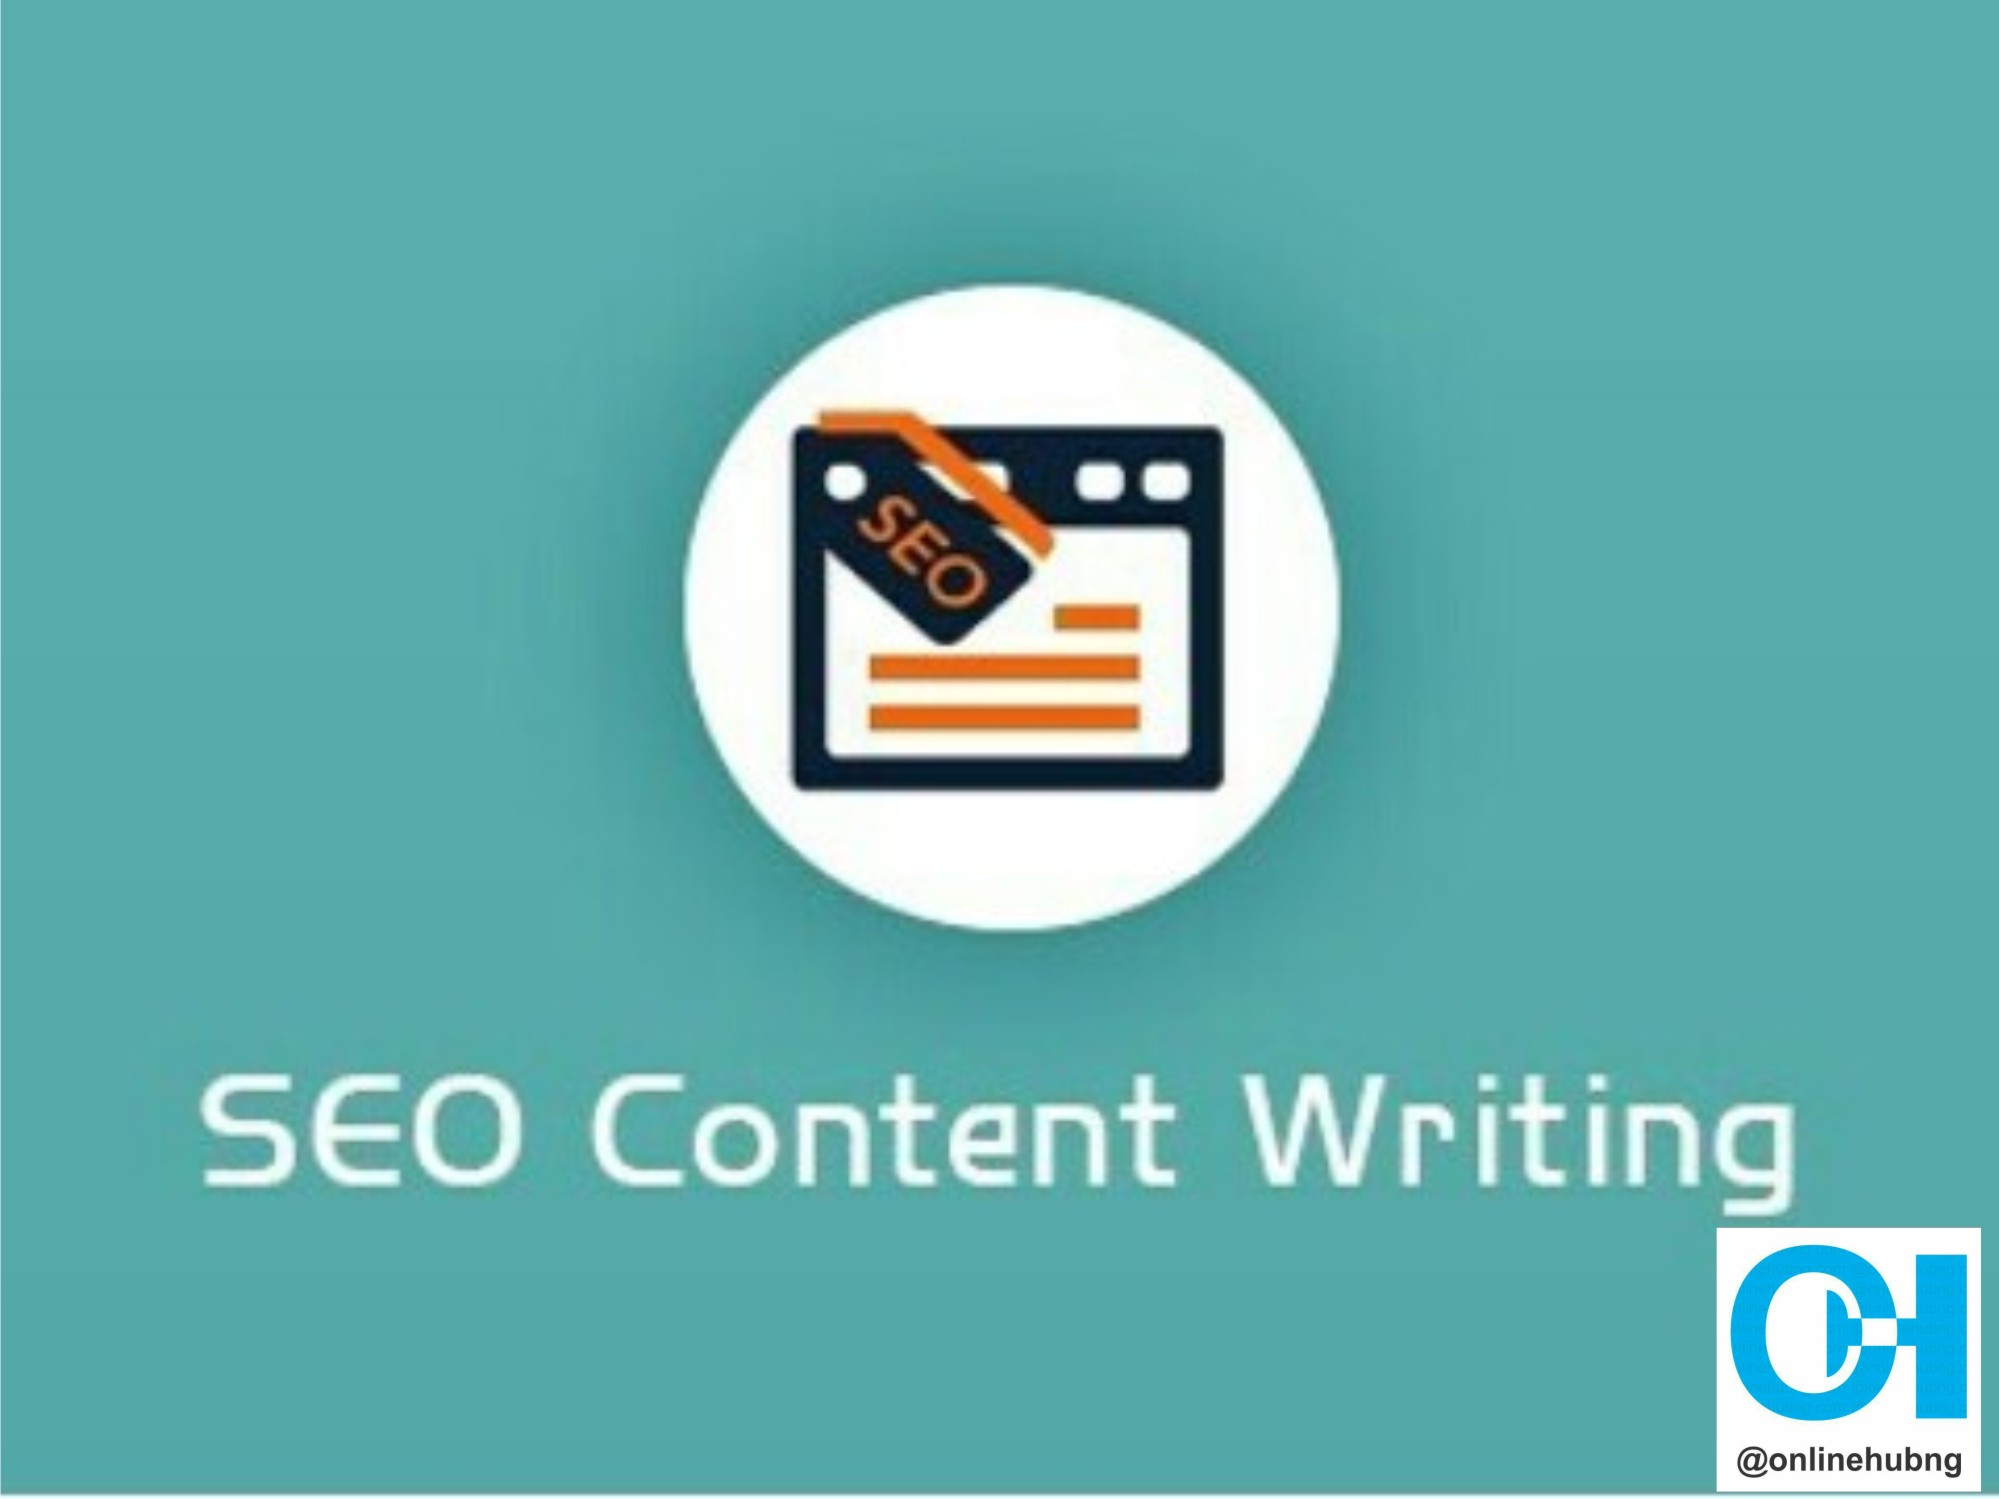 SEO Content Writing;  A Guide to Creating Content for SEO